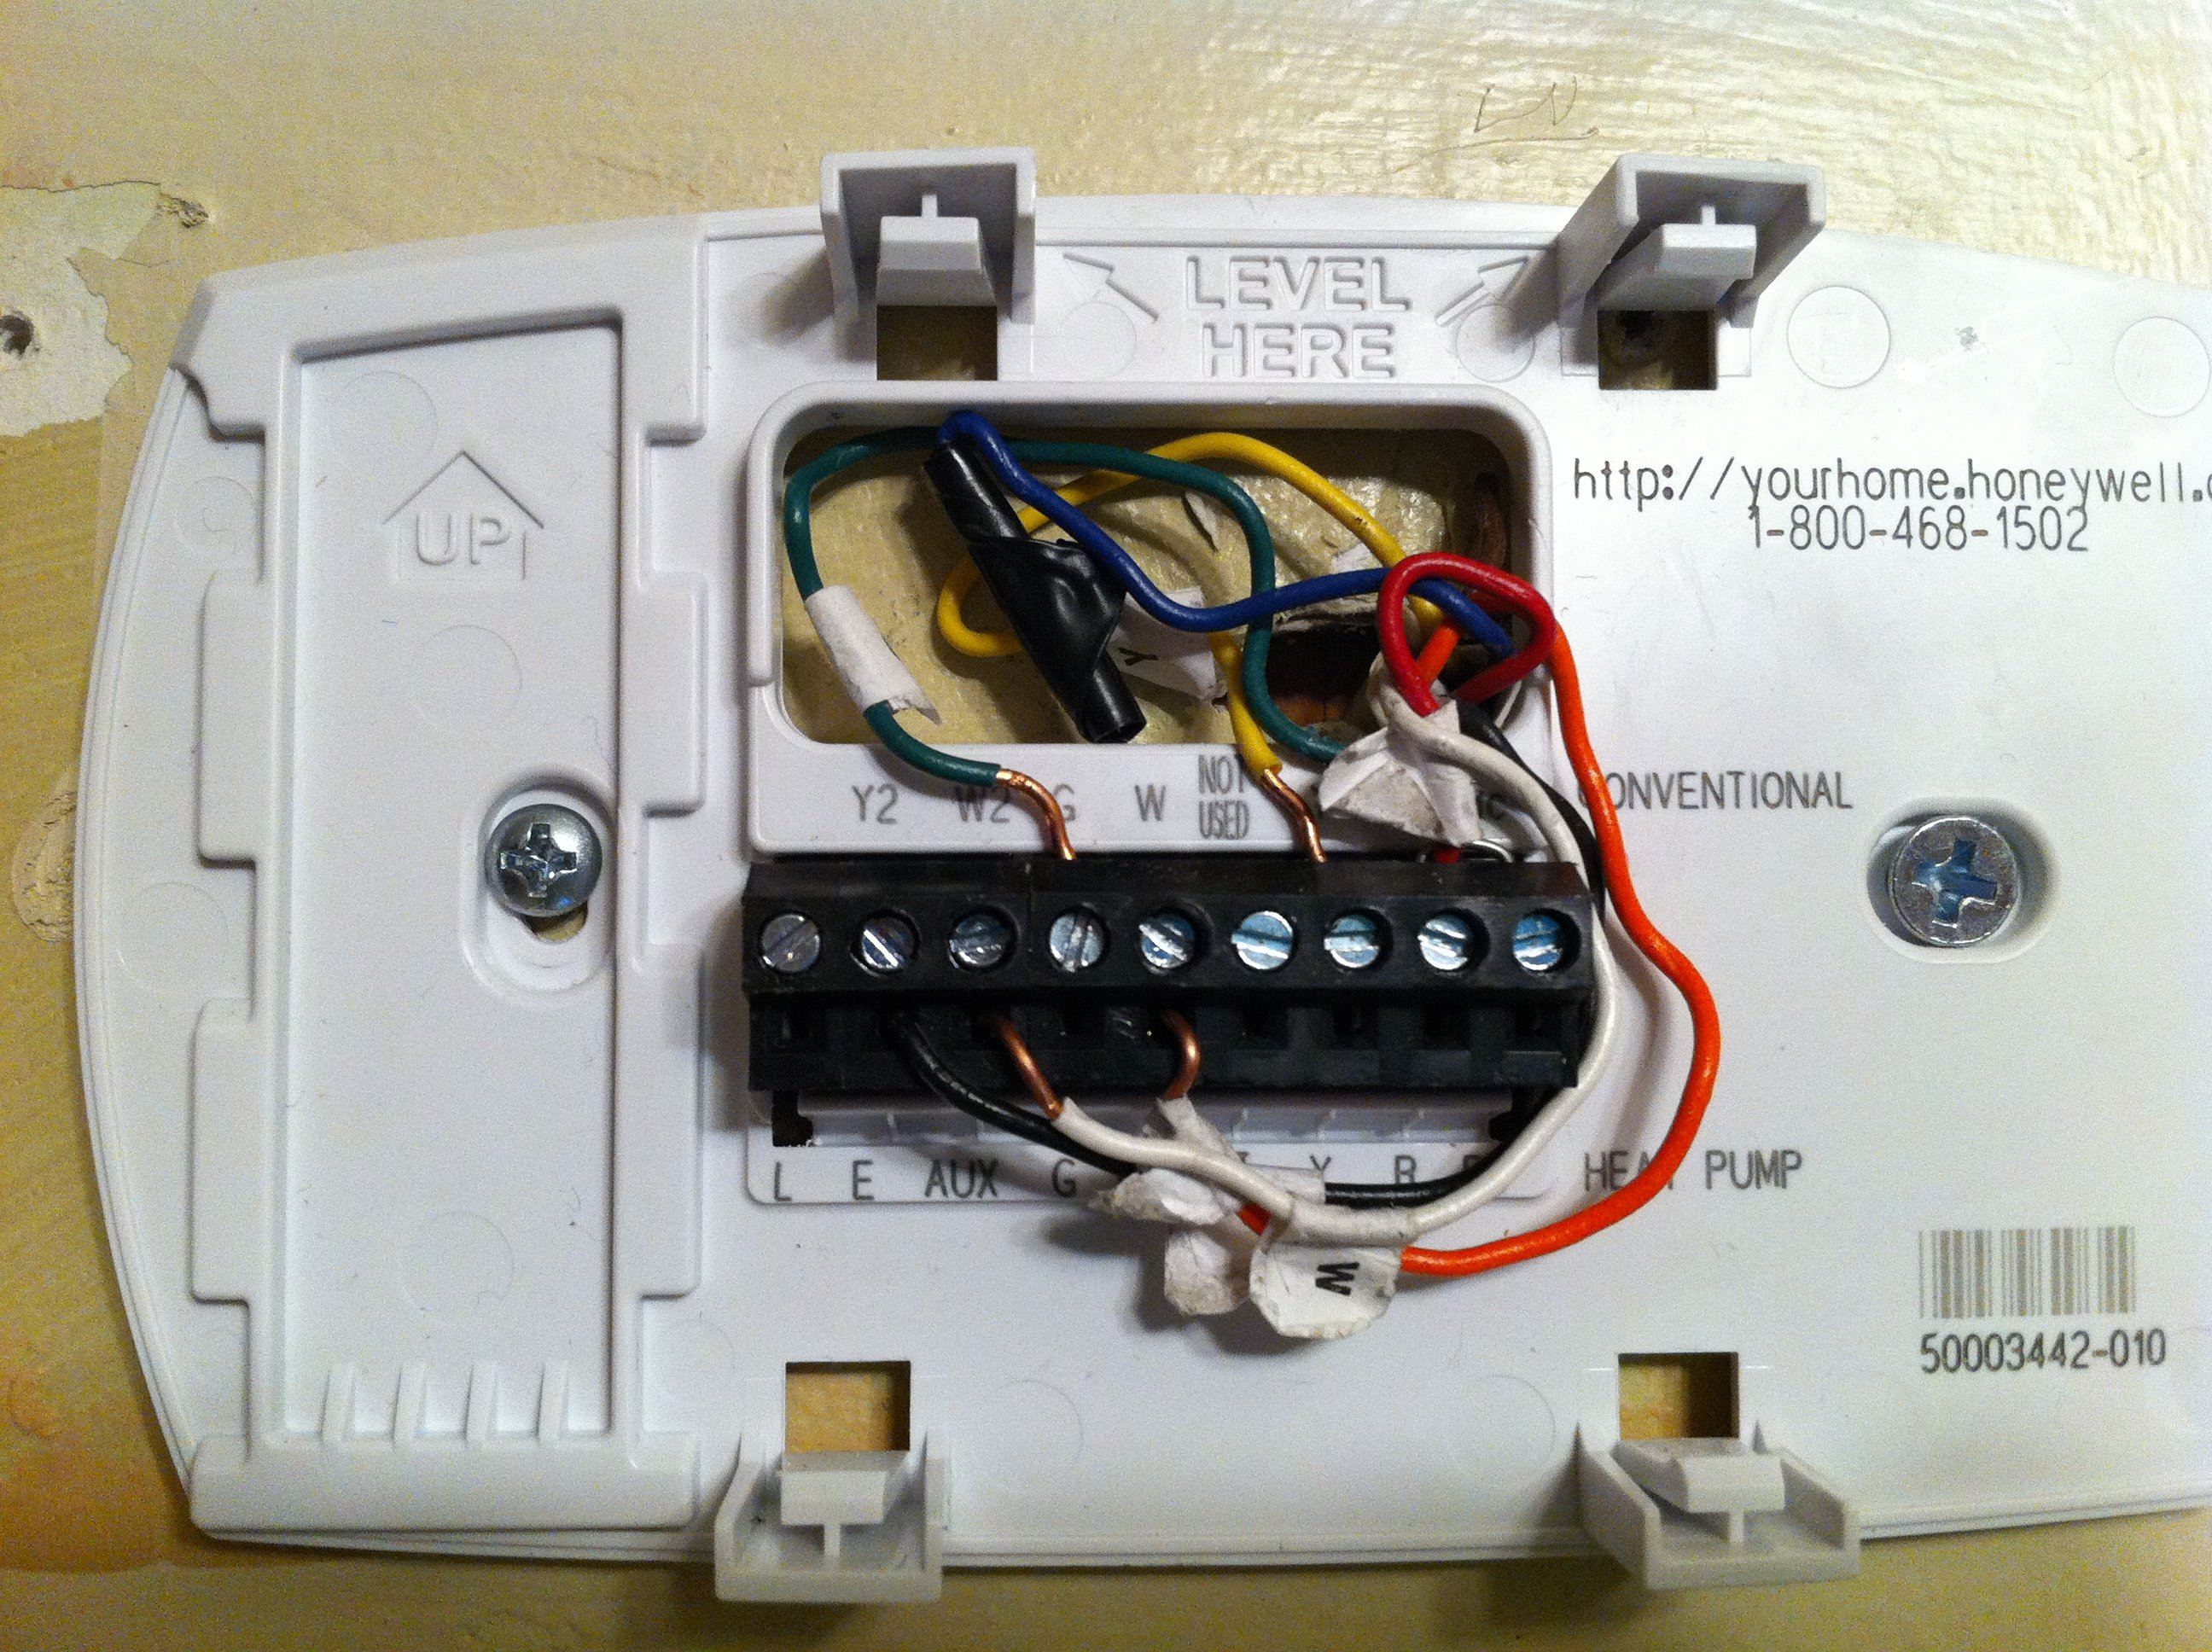 I Just Bought A New Digital Rth6350d To Replace My Old York Mechanical Thermostat With Mercury